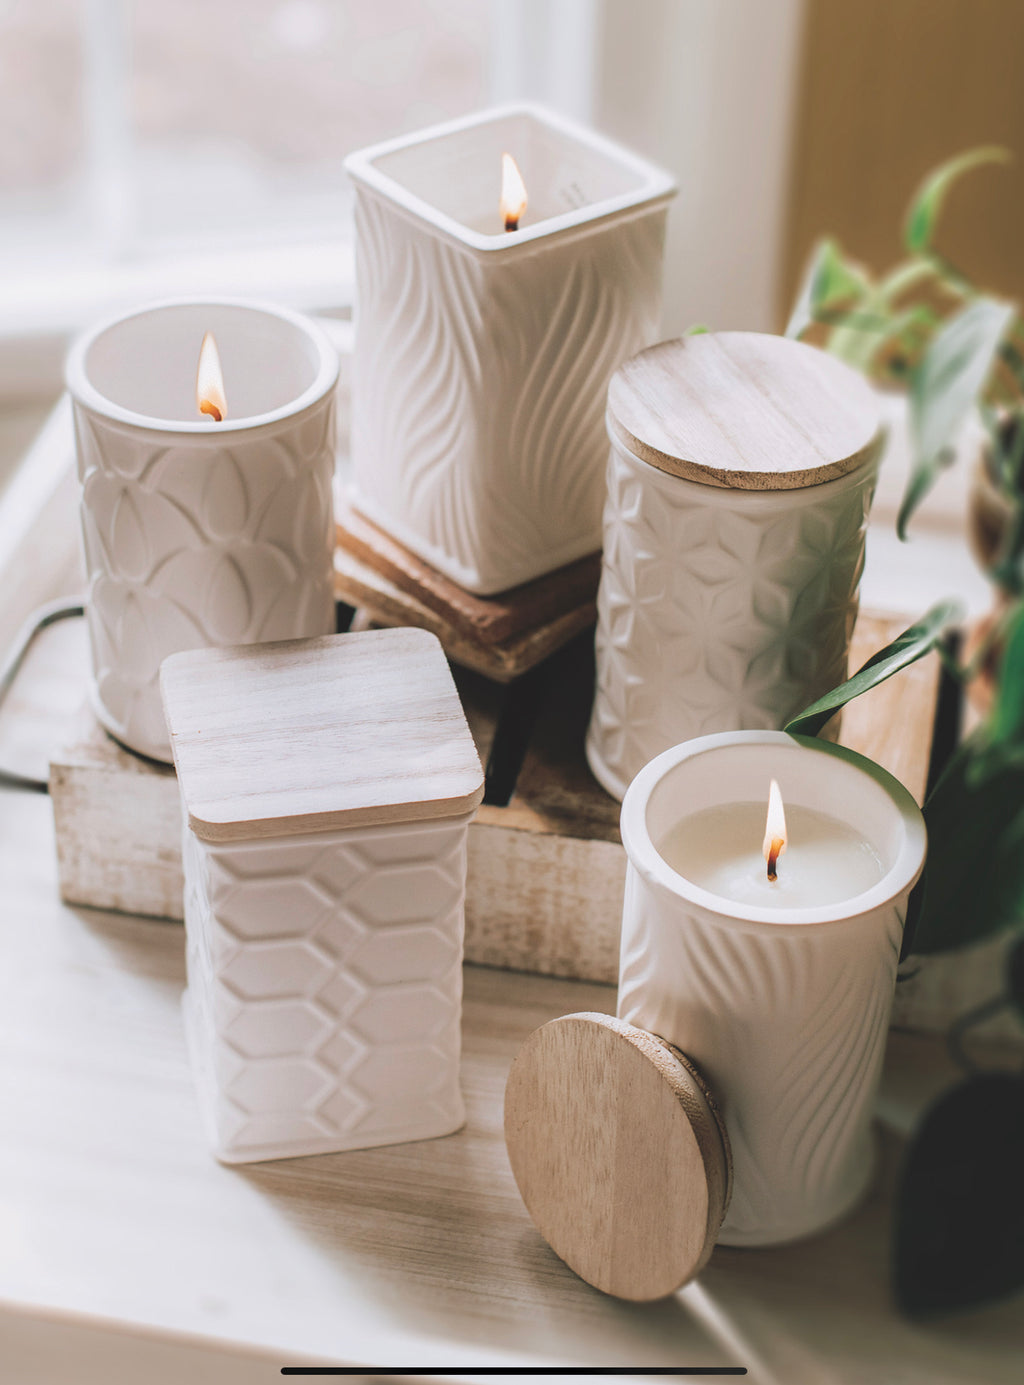 White round and square candles